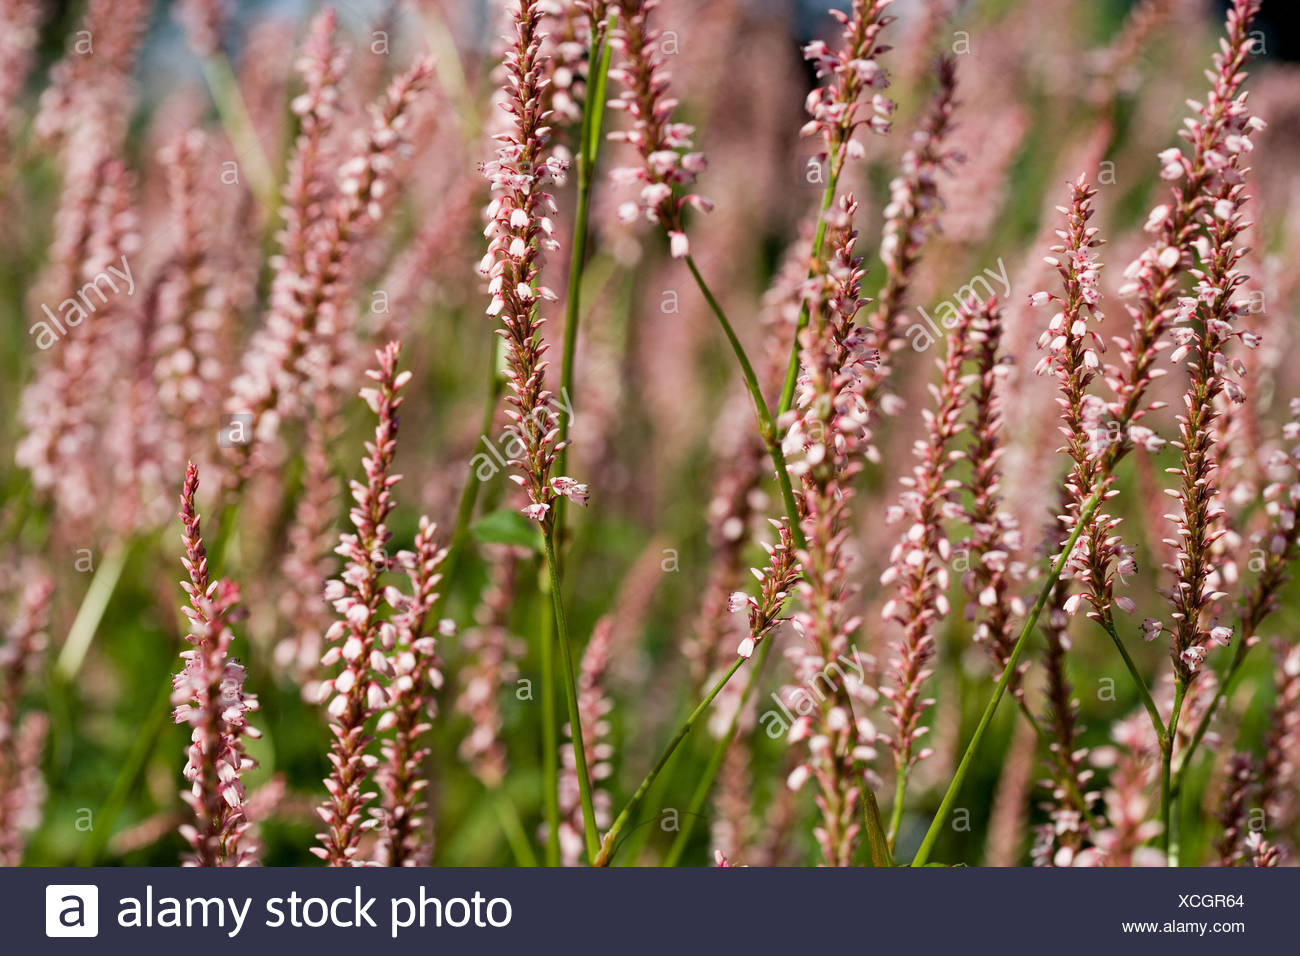 Pink Flowers Long Stemmed Flowering Plant Stock Photo 283111196